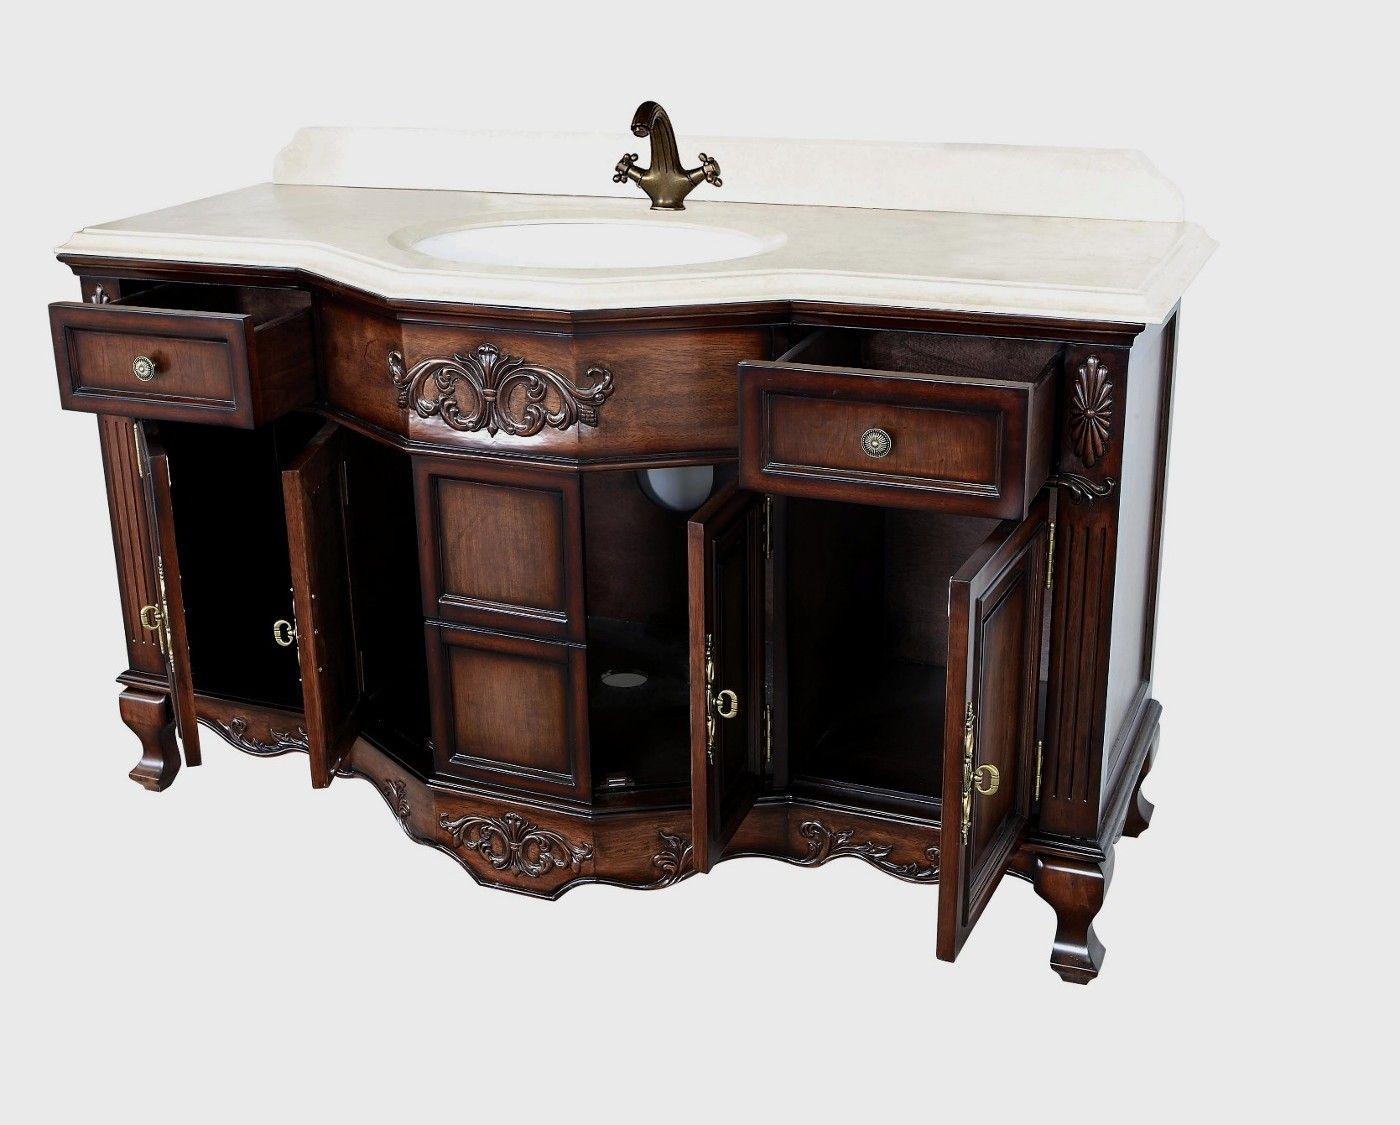 Montage Antique Style Bathroom Vanity Single Sink 60 Single Sink Tuscan Style And Bathroom